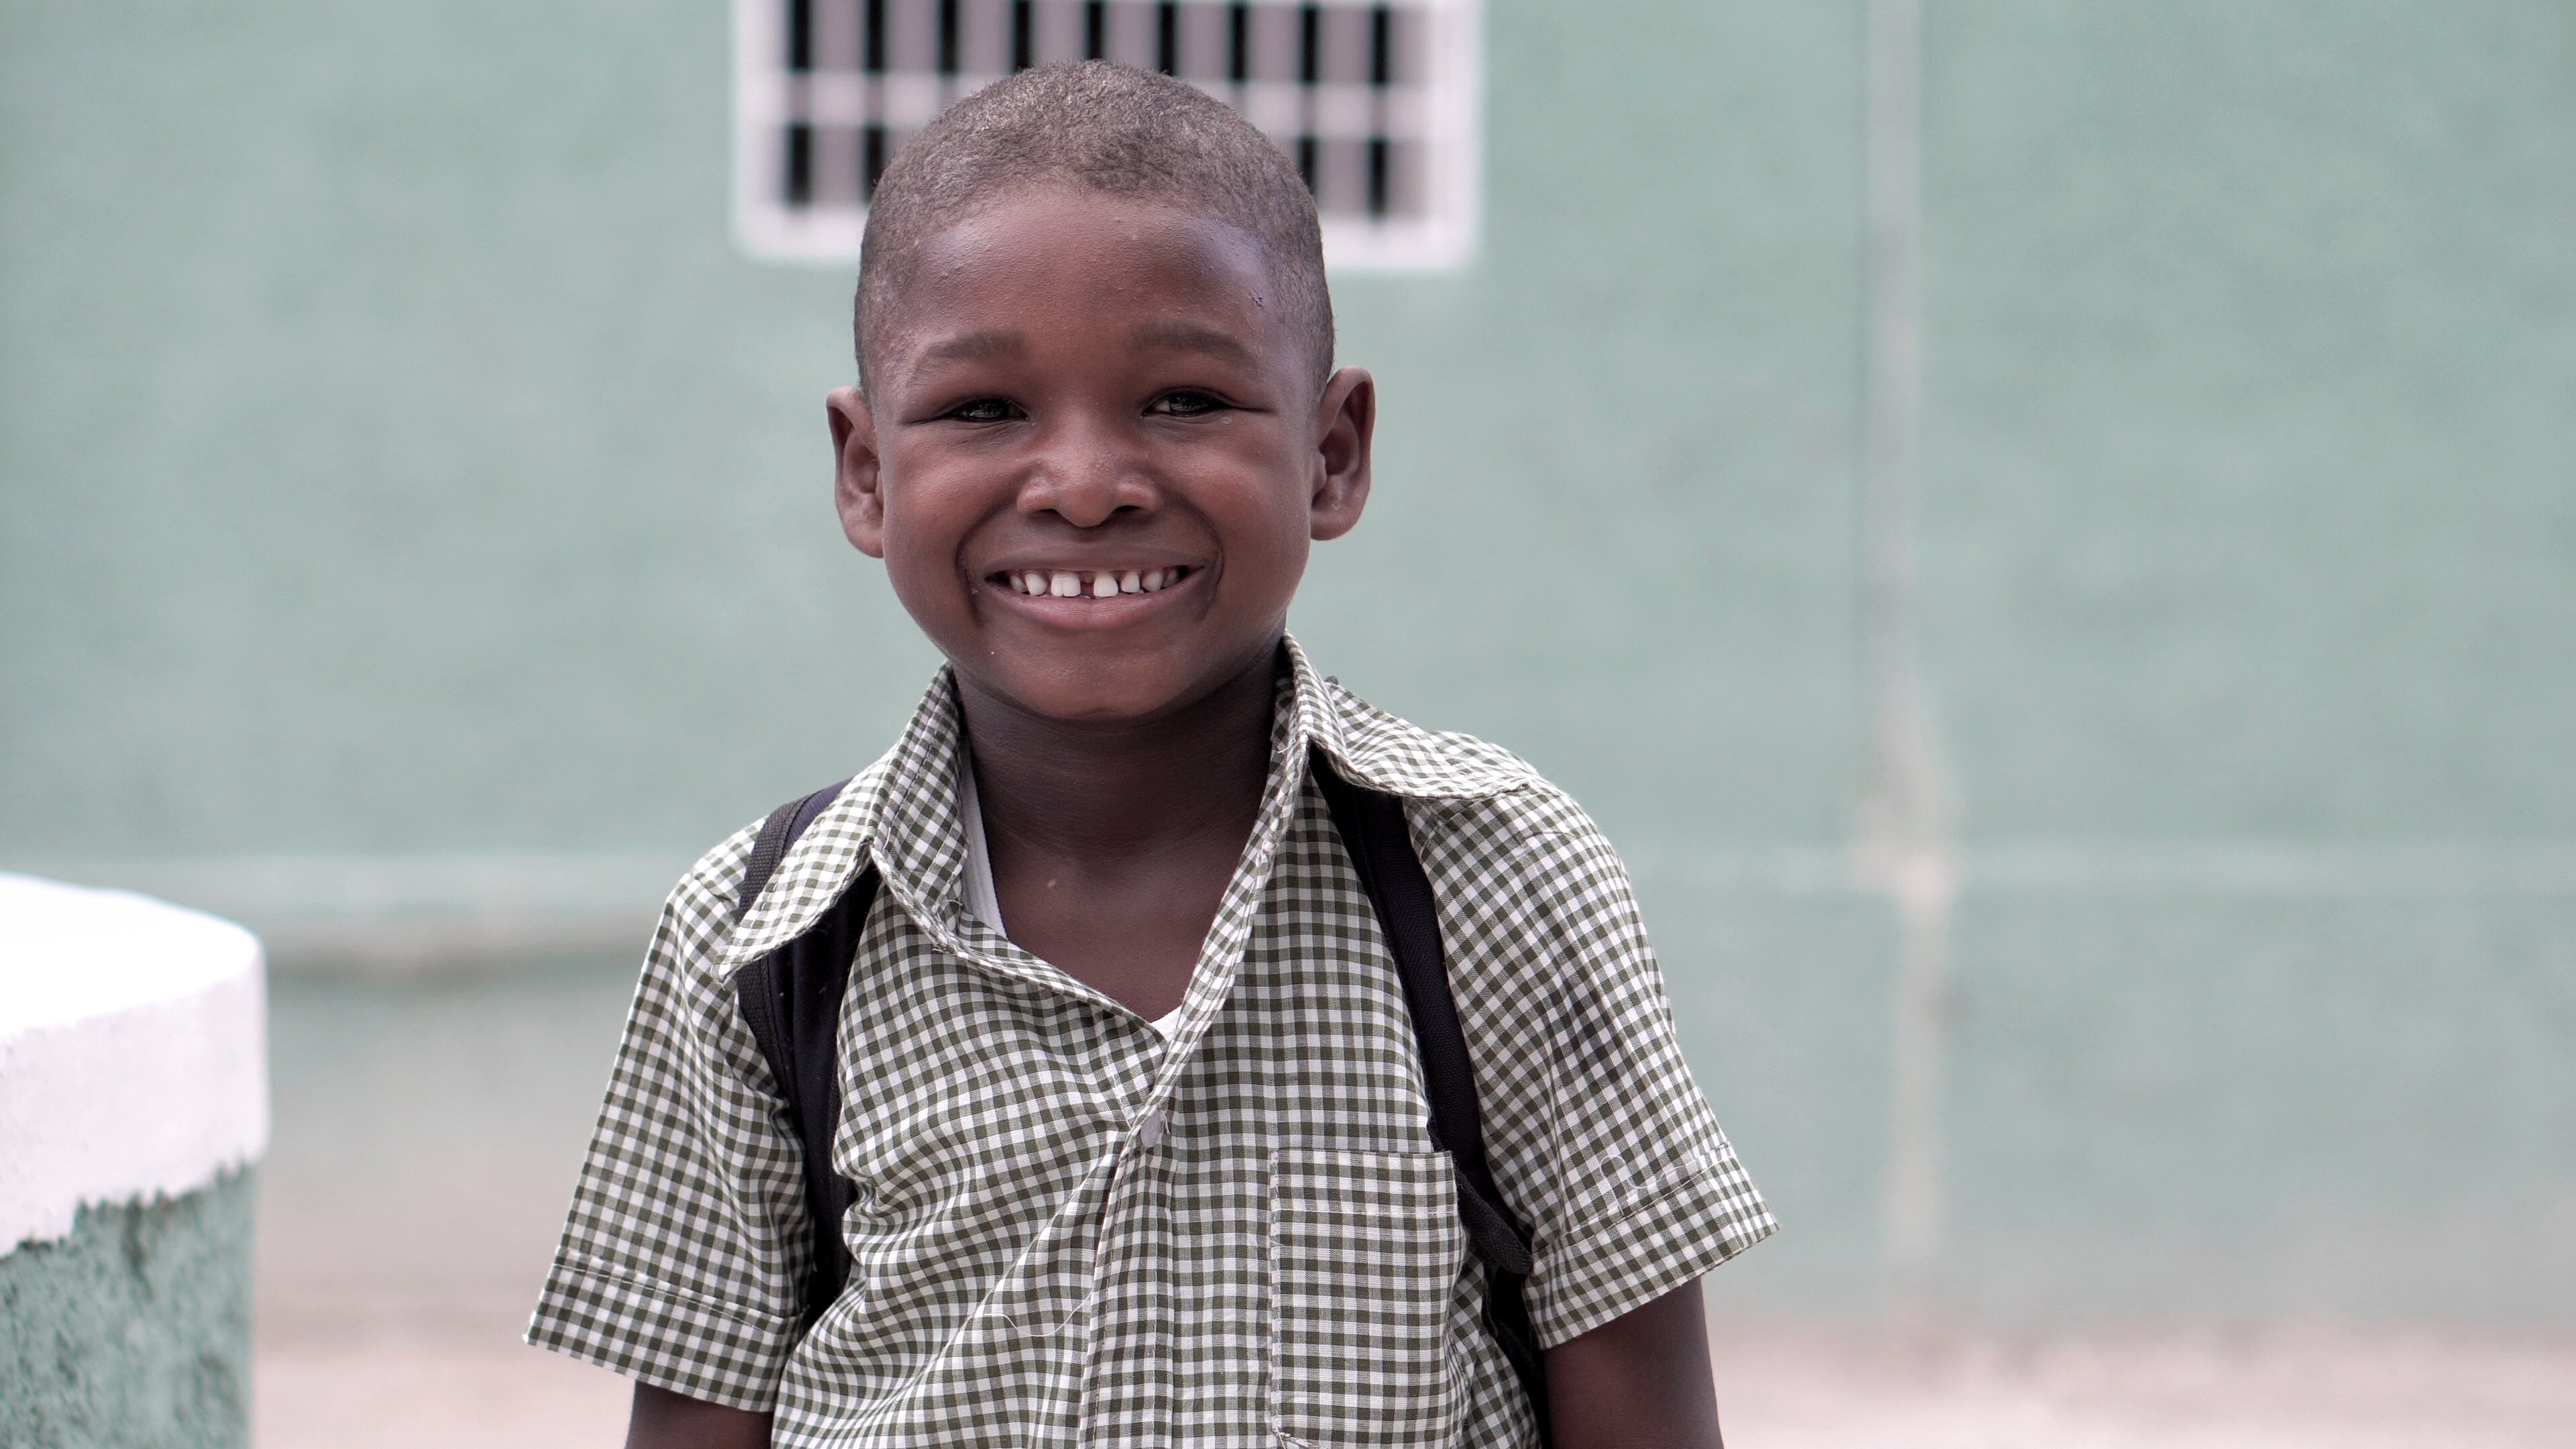 boy smiling carrying backpack